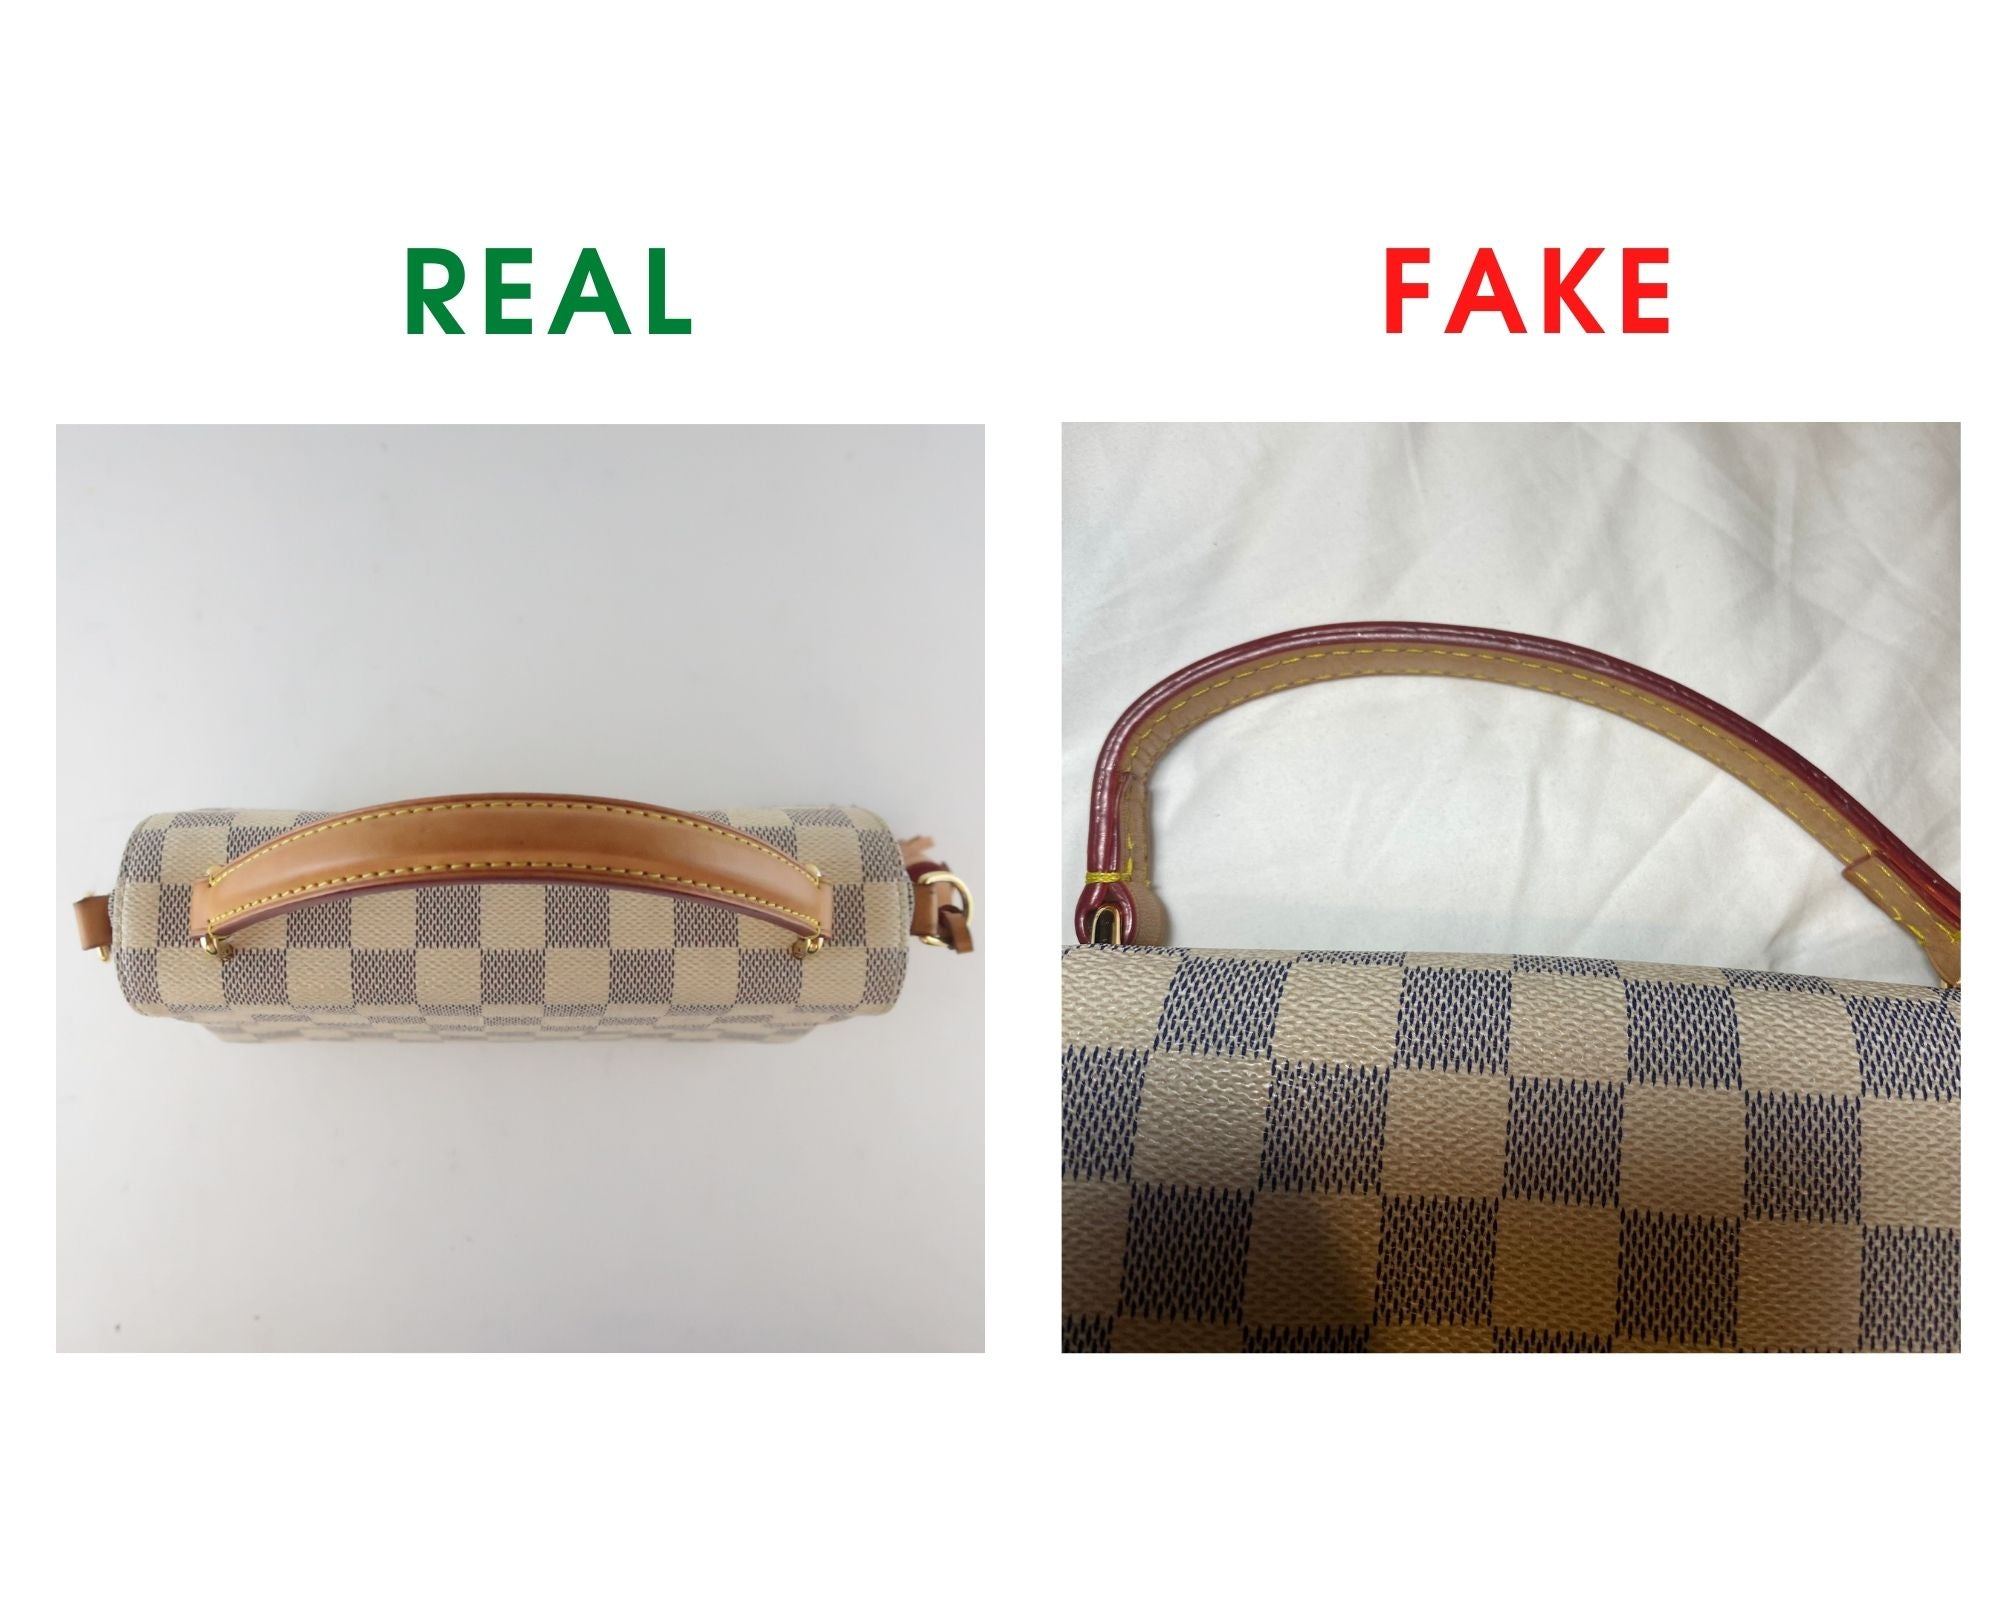 Louis Vuitton Croisette Bag Review and Real vs Fake Comparison (With Real Photos) Top handle